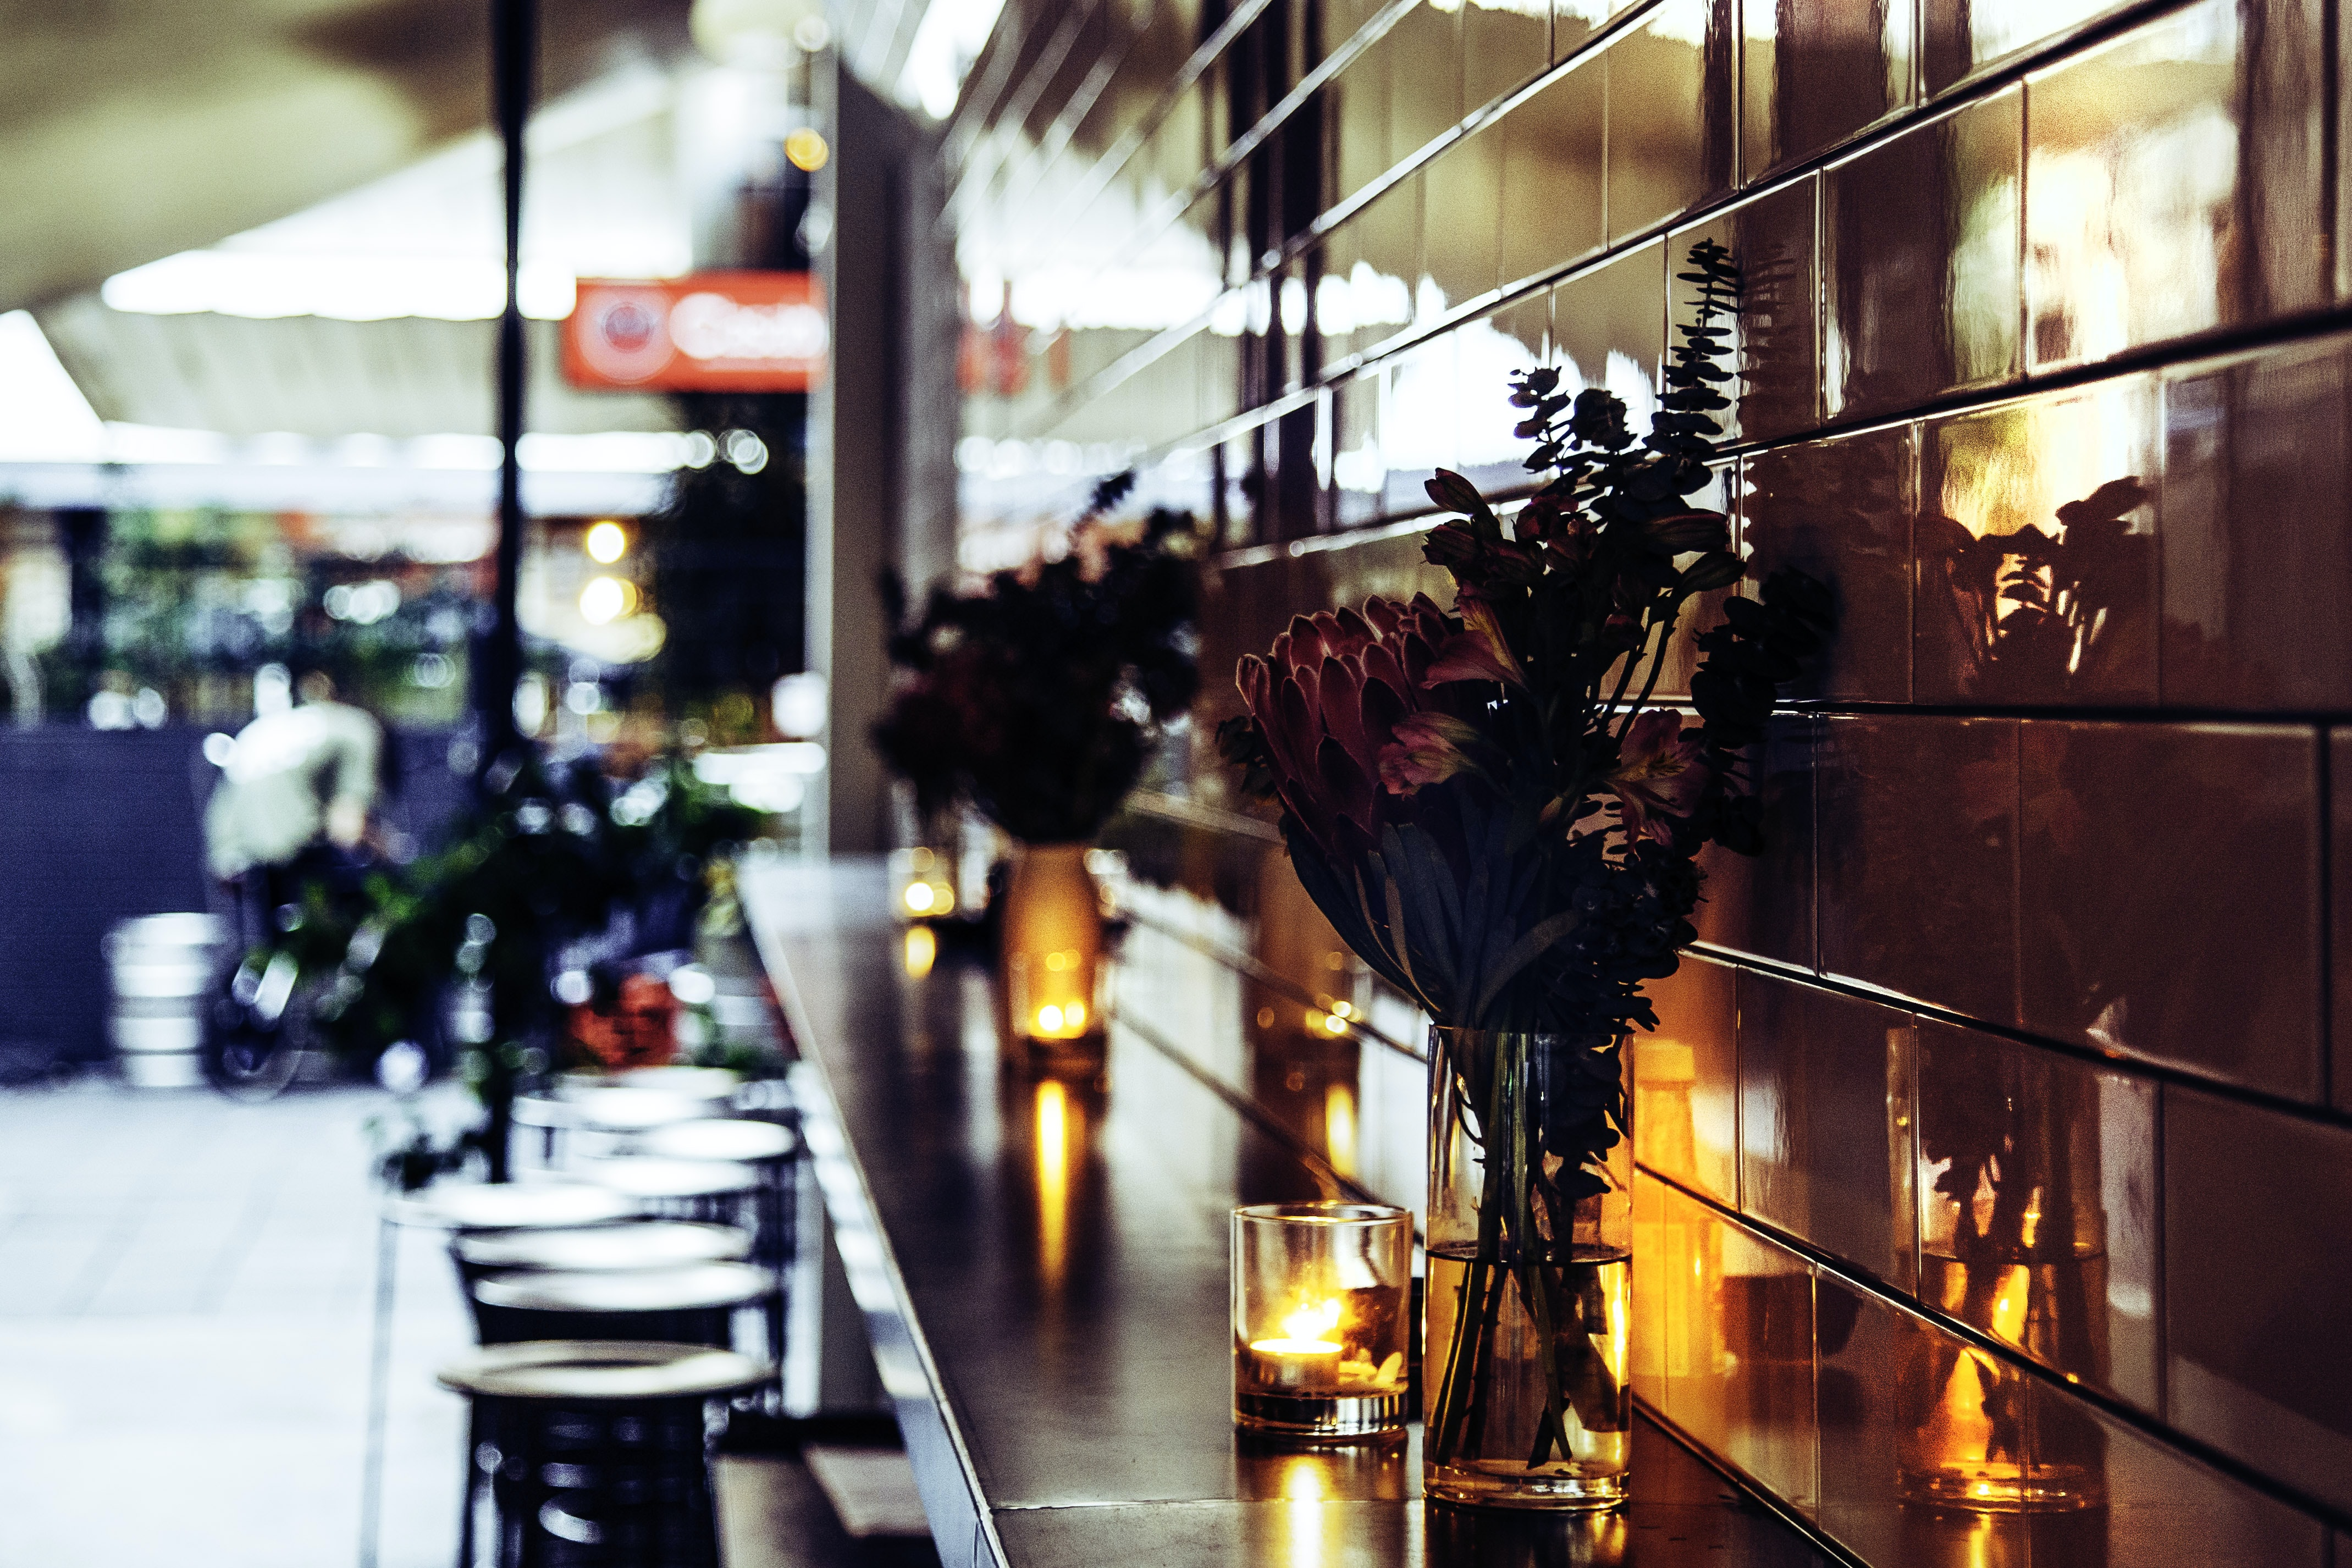 Empty bar stools near a wall ledge with candles and flowers in vases on it